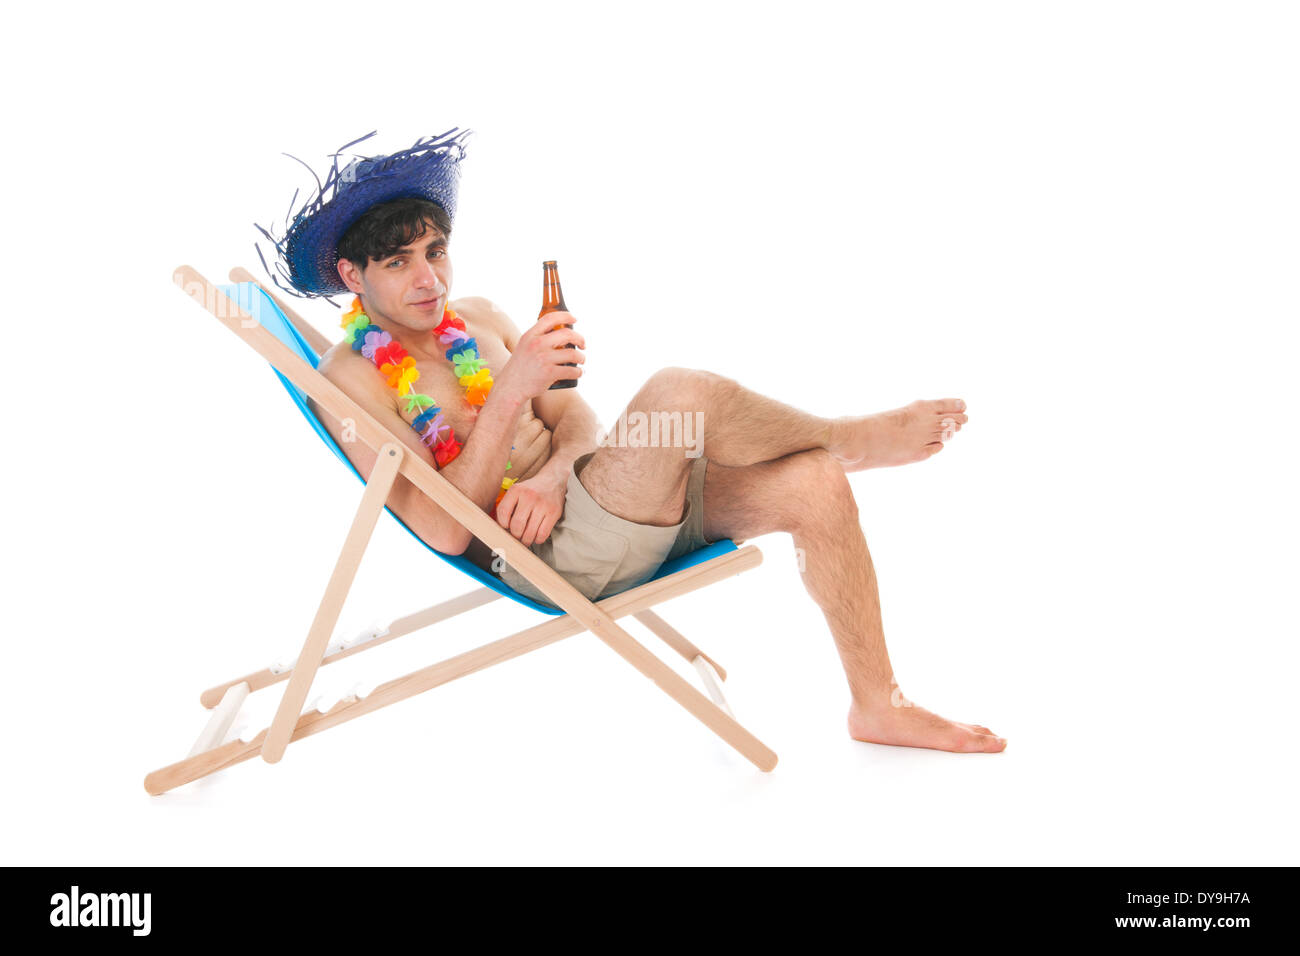 Sitting In Beach Chair High Resolution Stock Photography And Images Alamy